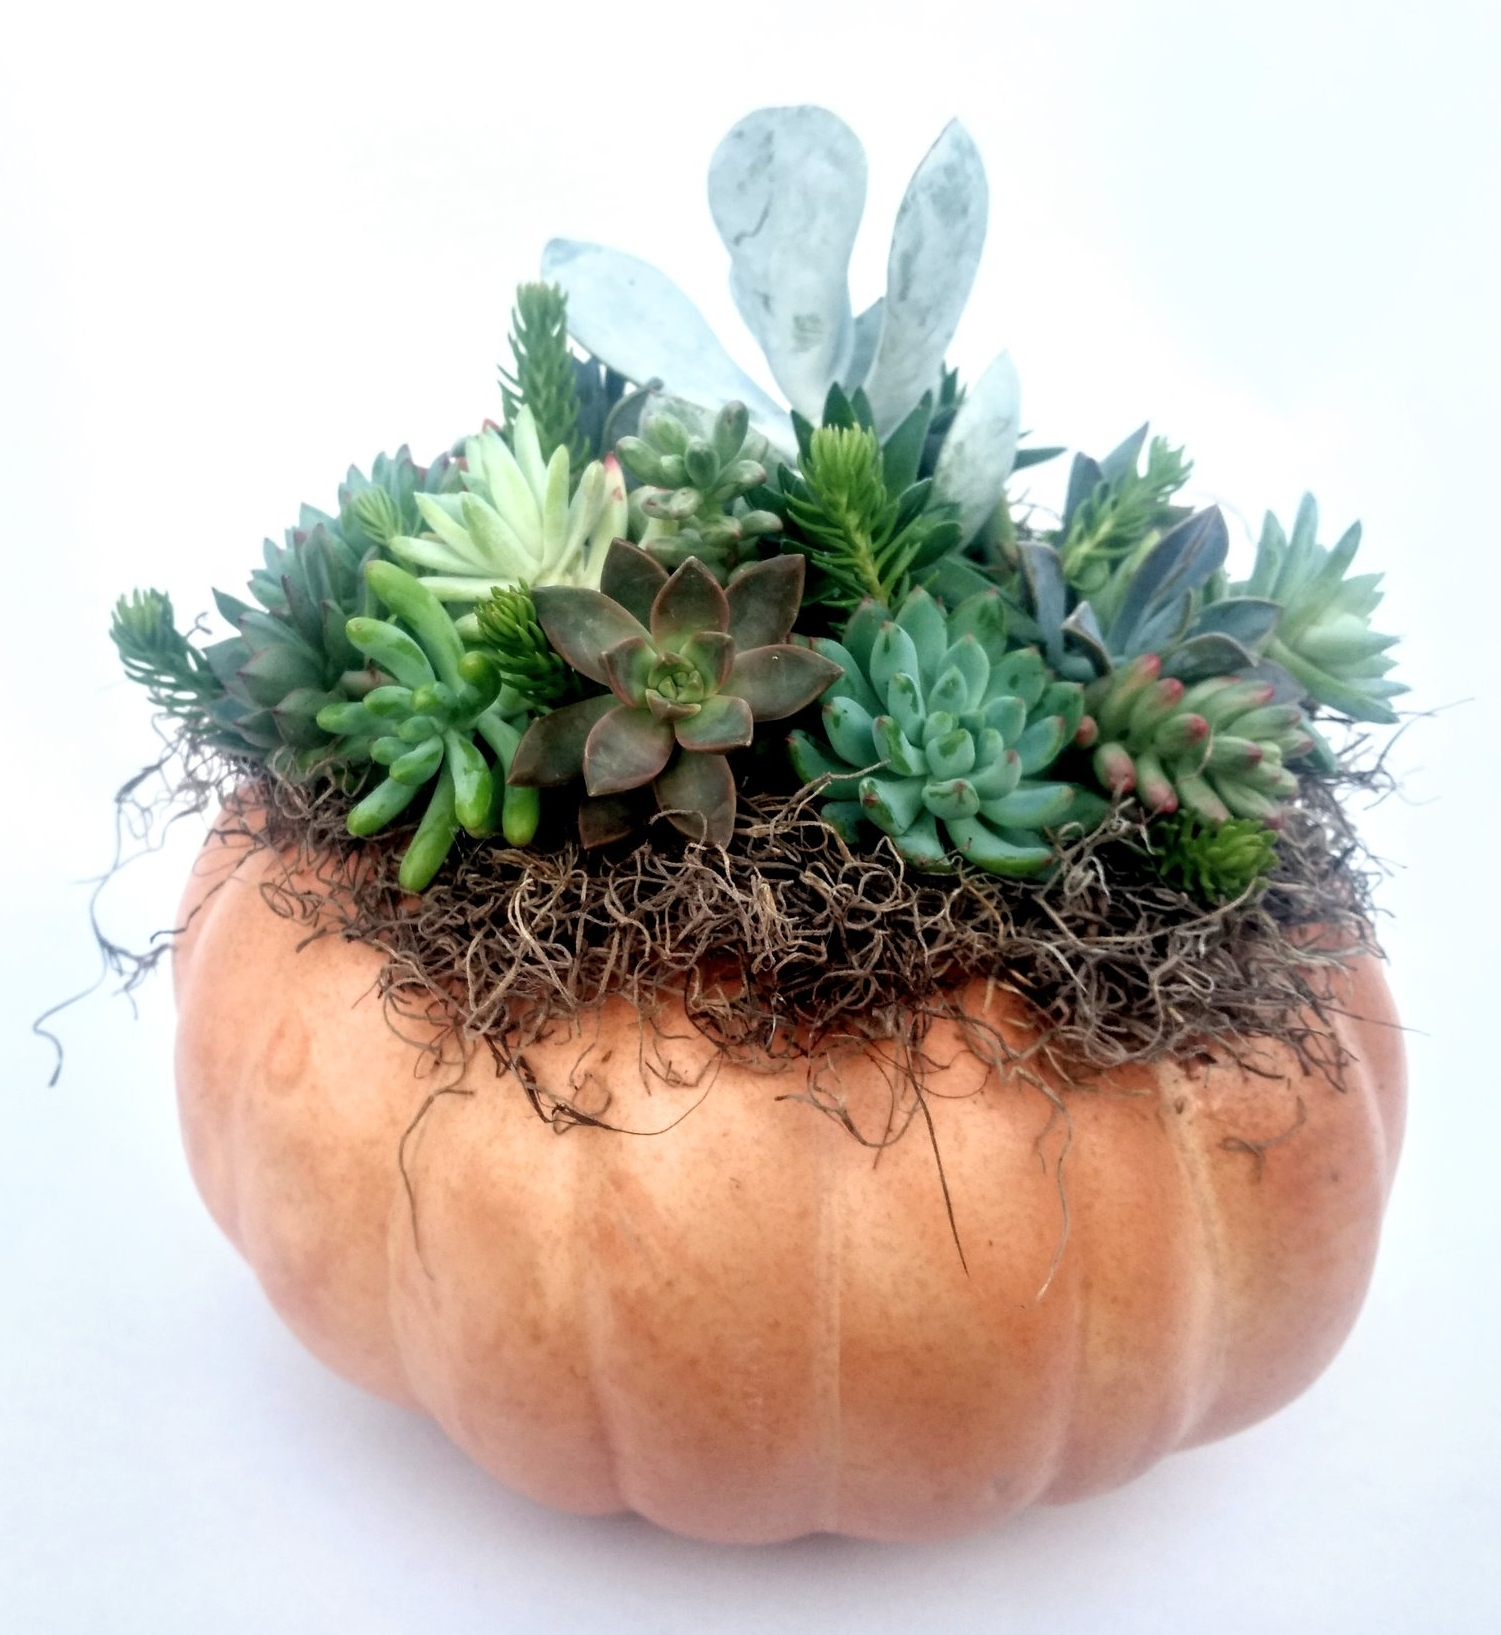 succulent pumpkin workshop petaluma sonoma san francisco bay area santa rosa